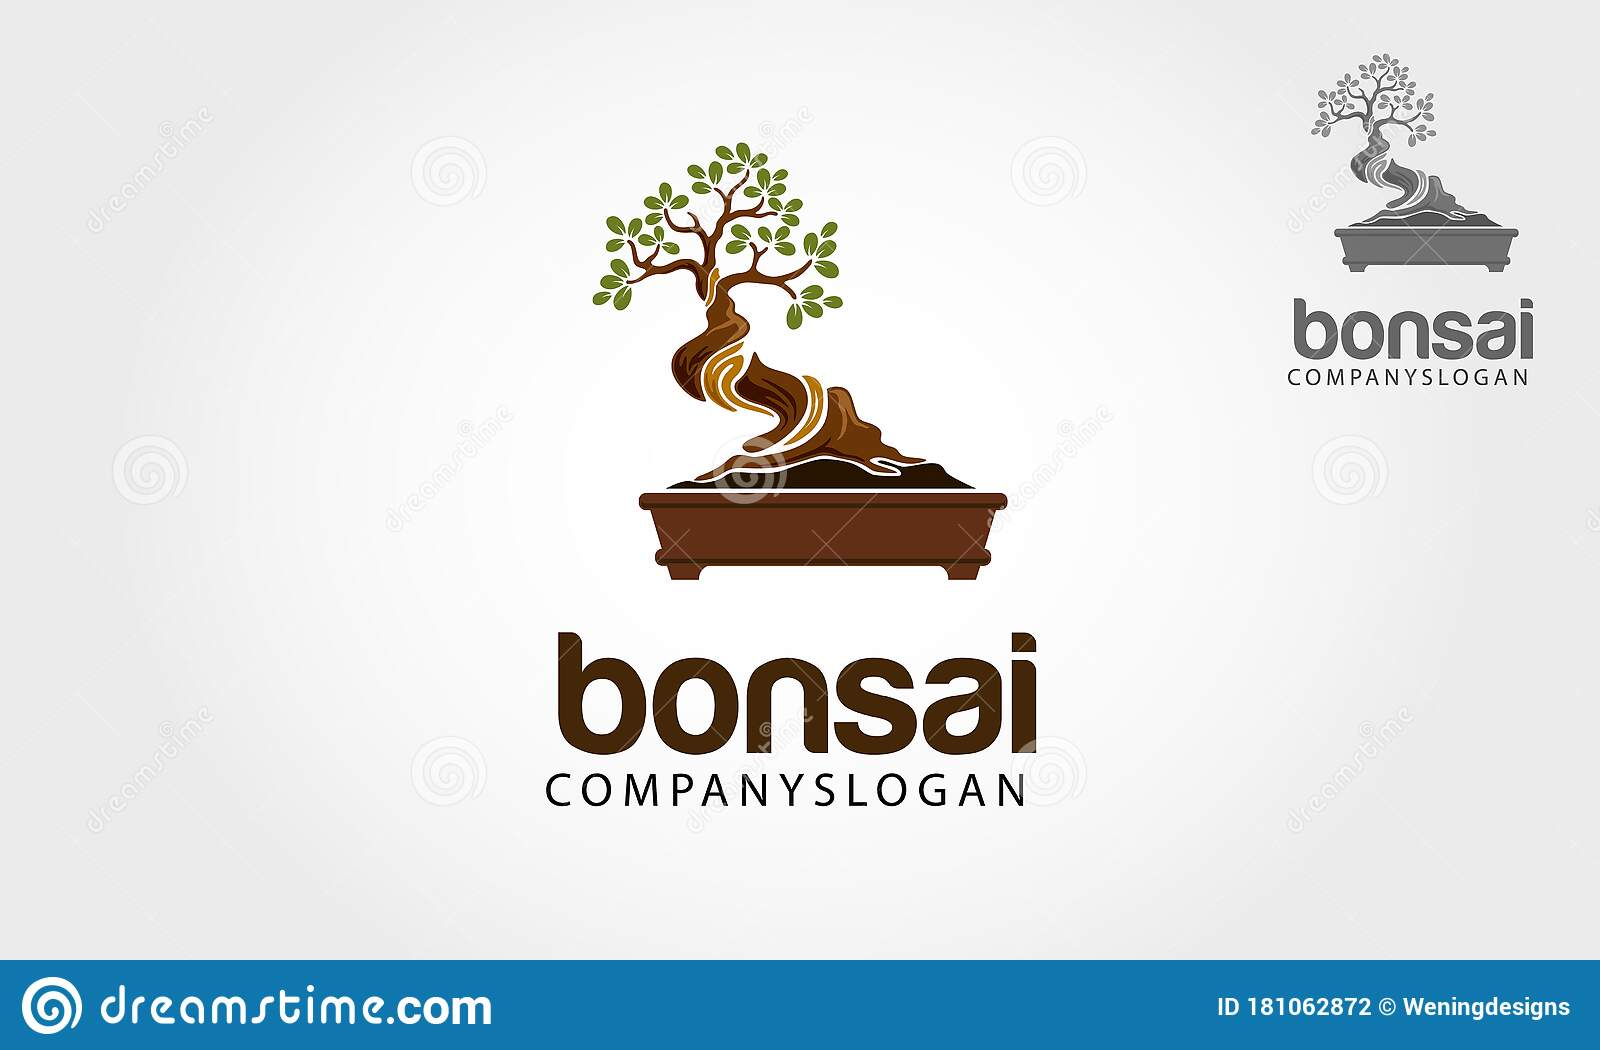 Bonsai Vector Stock Illustrations 4 969 Bonsai Vector Stock Illustrations Vectors Clipart Dreamstime